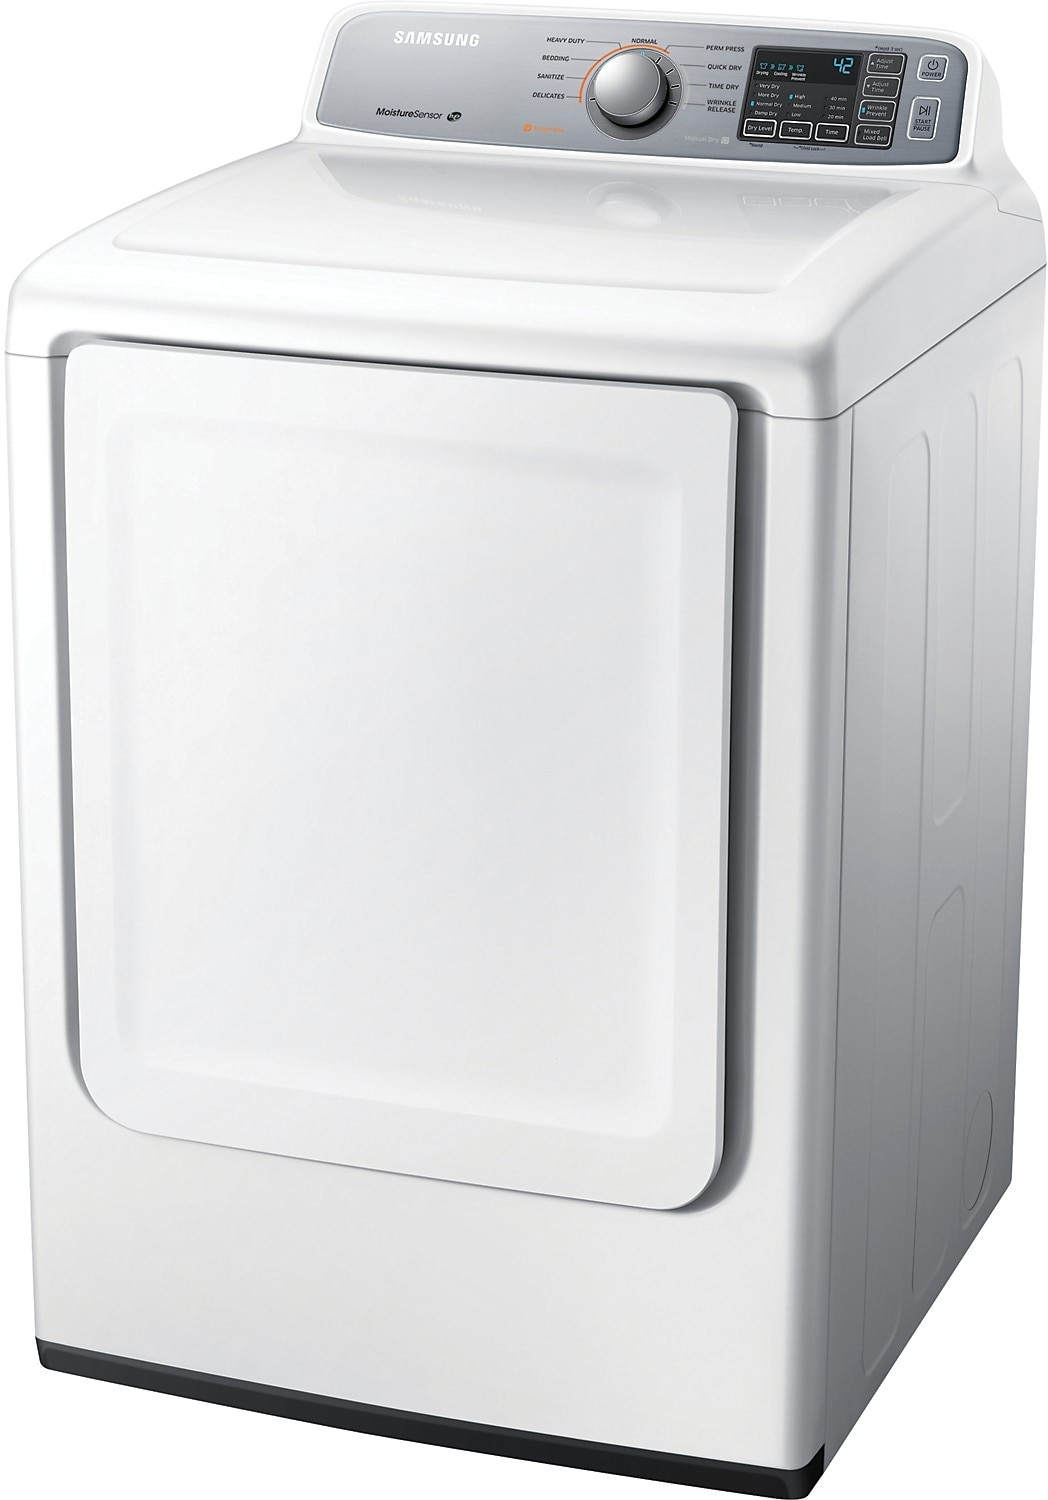 Samsung 7 4 Cu Ft Extra Large Capacity Electric Dryer